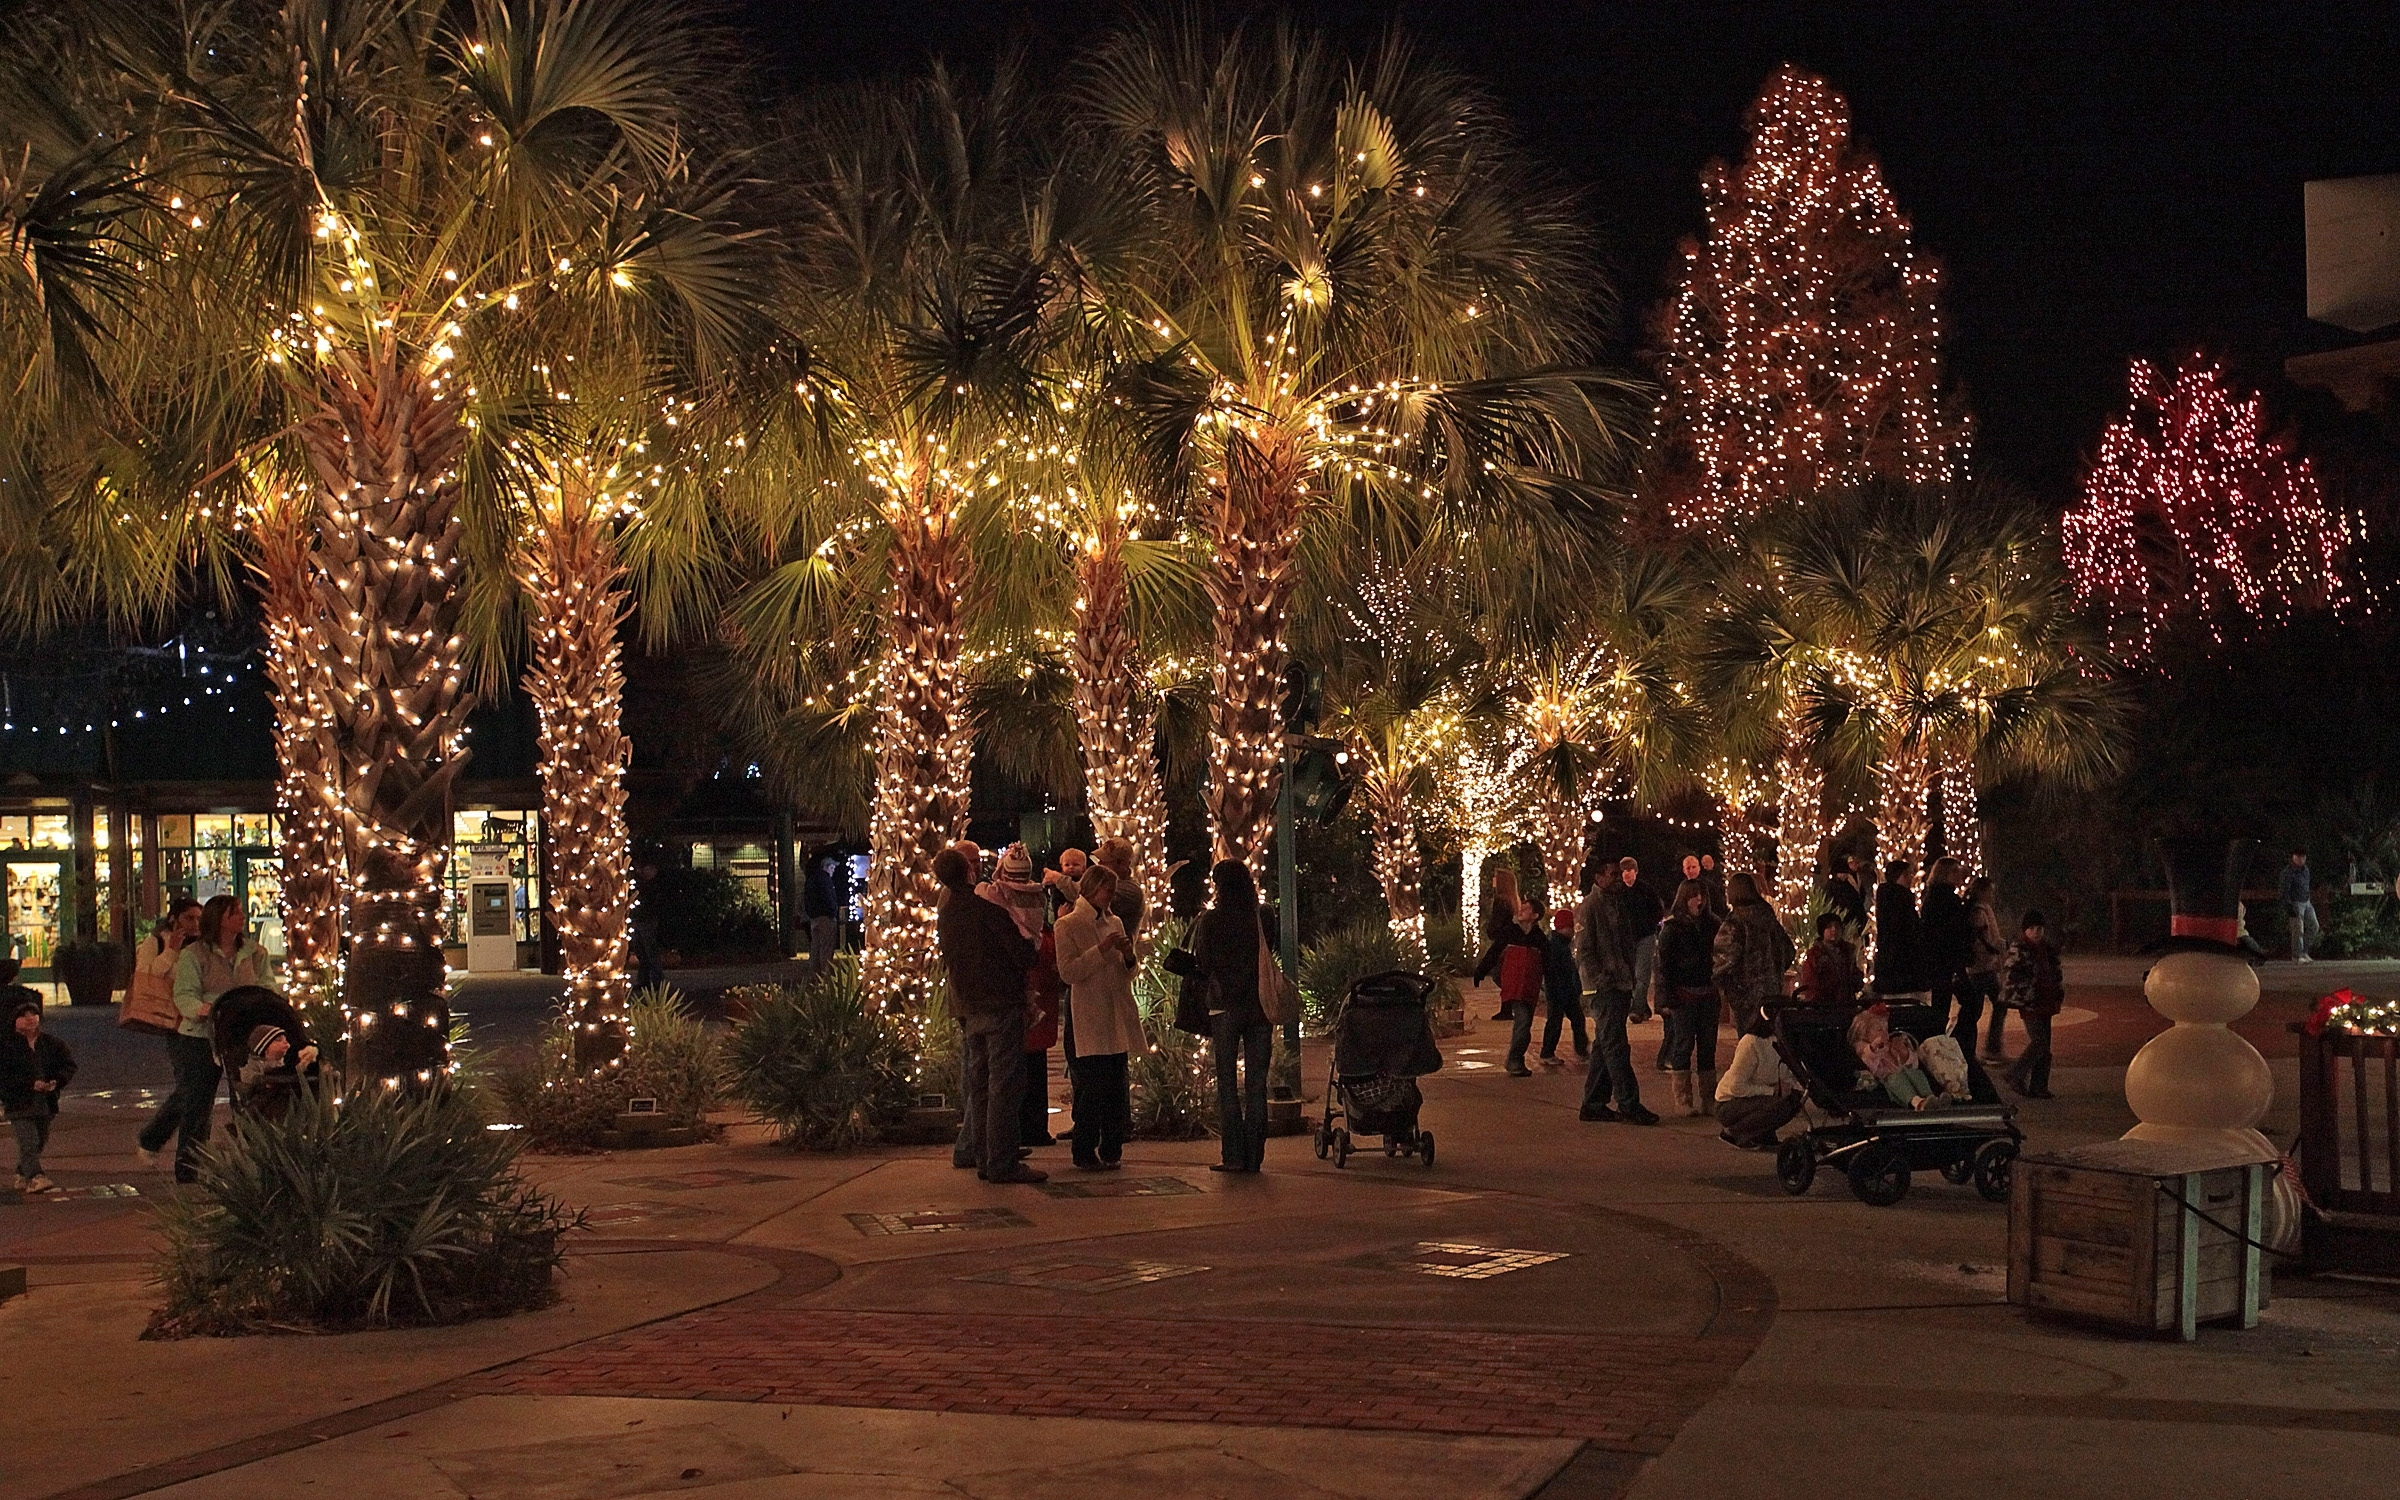 Outdoor Lanterns For Christmas For Well Known Outdoor Solar Decorations String Lighting On Palm Trees In (View 4 of 20)